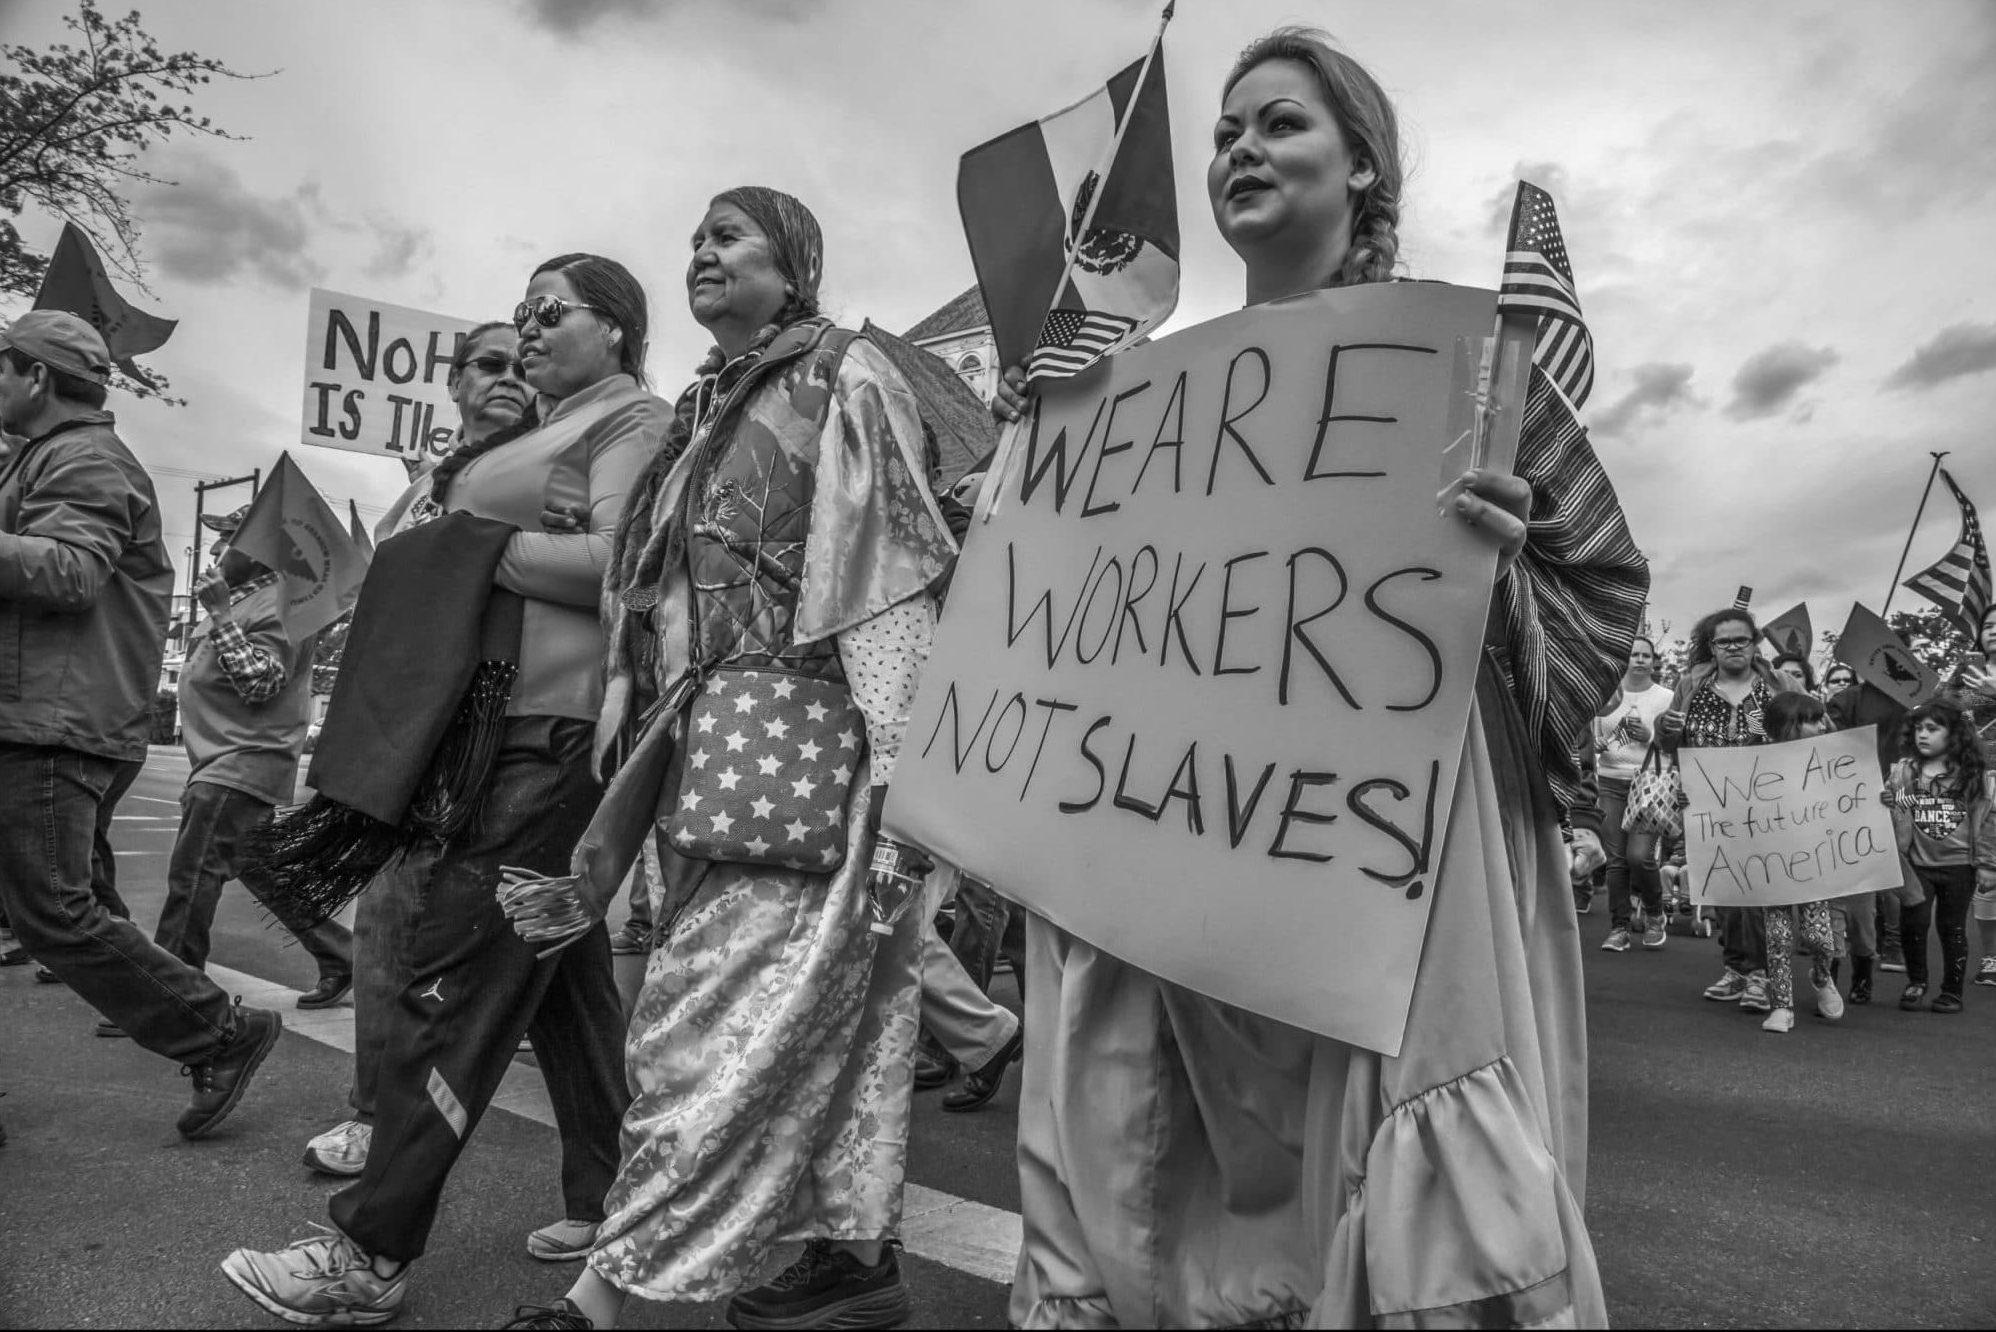 | Yakima Nation Native Americans and Immigrants March to Celebdrate May Day | MR Online